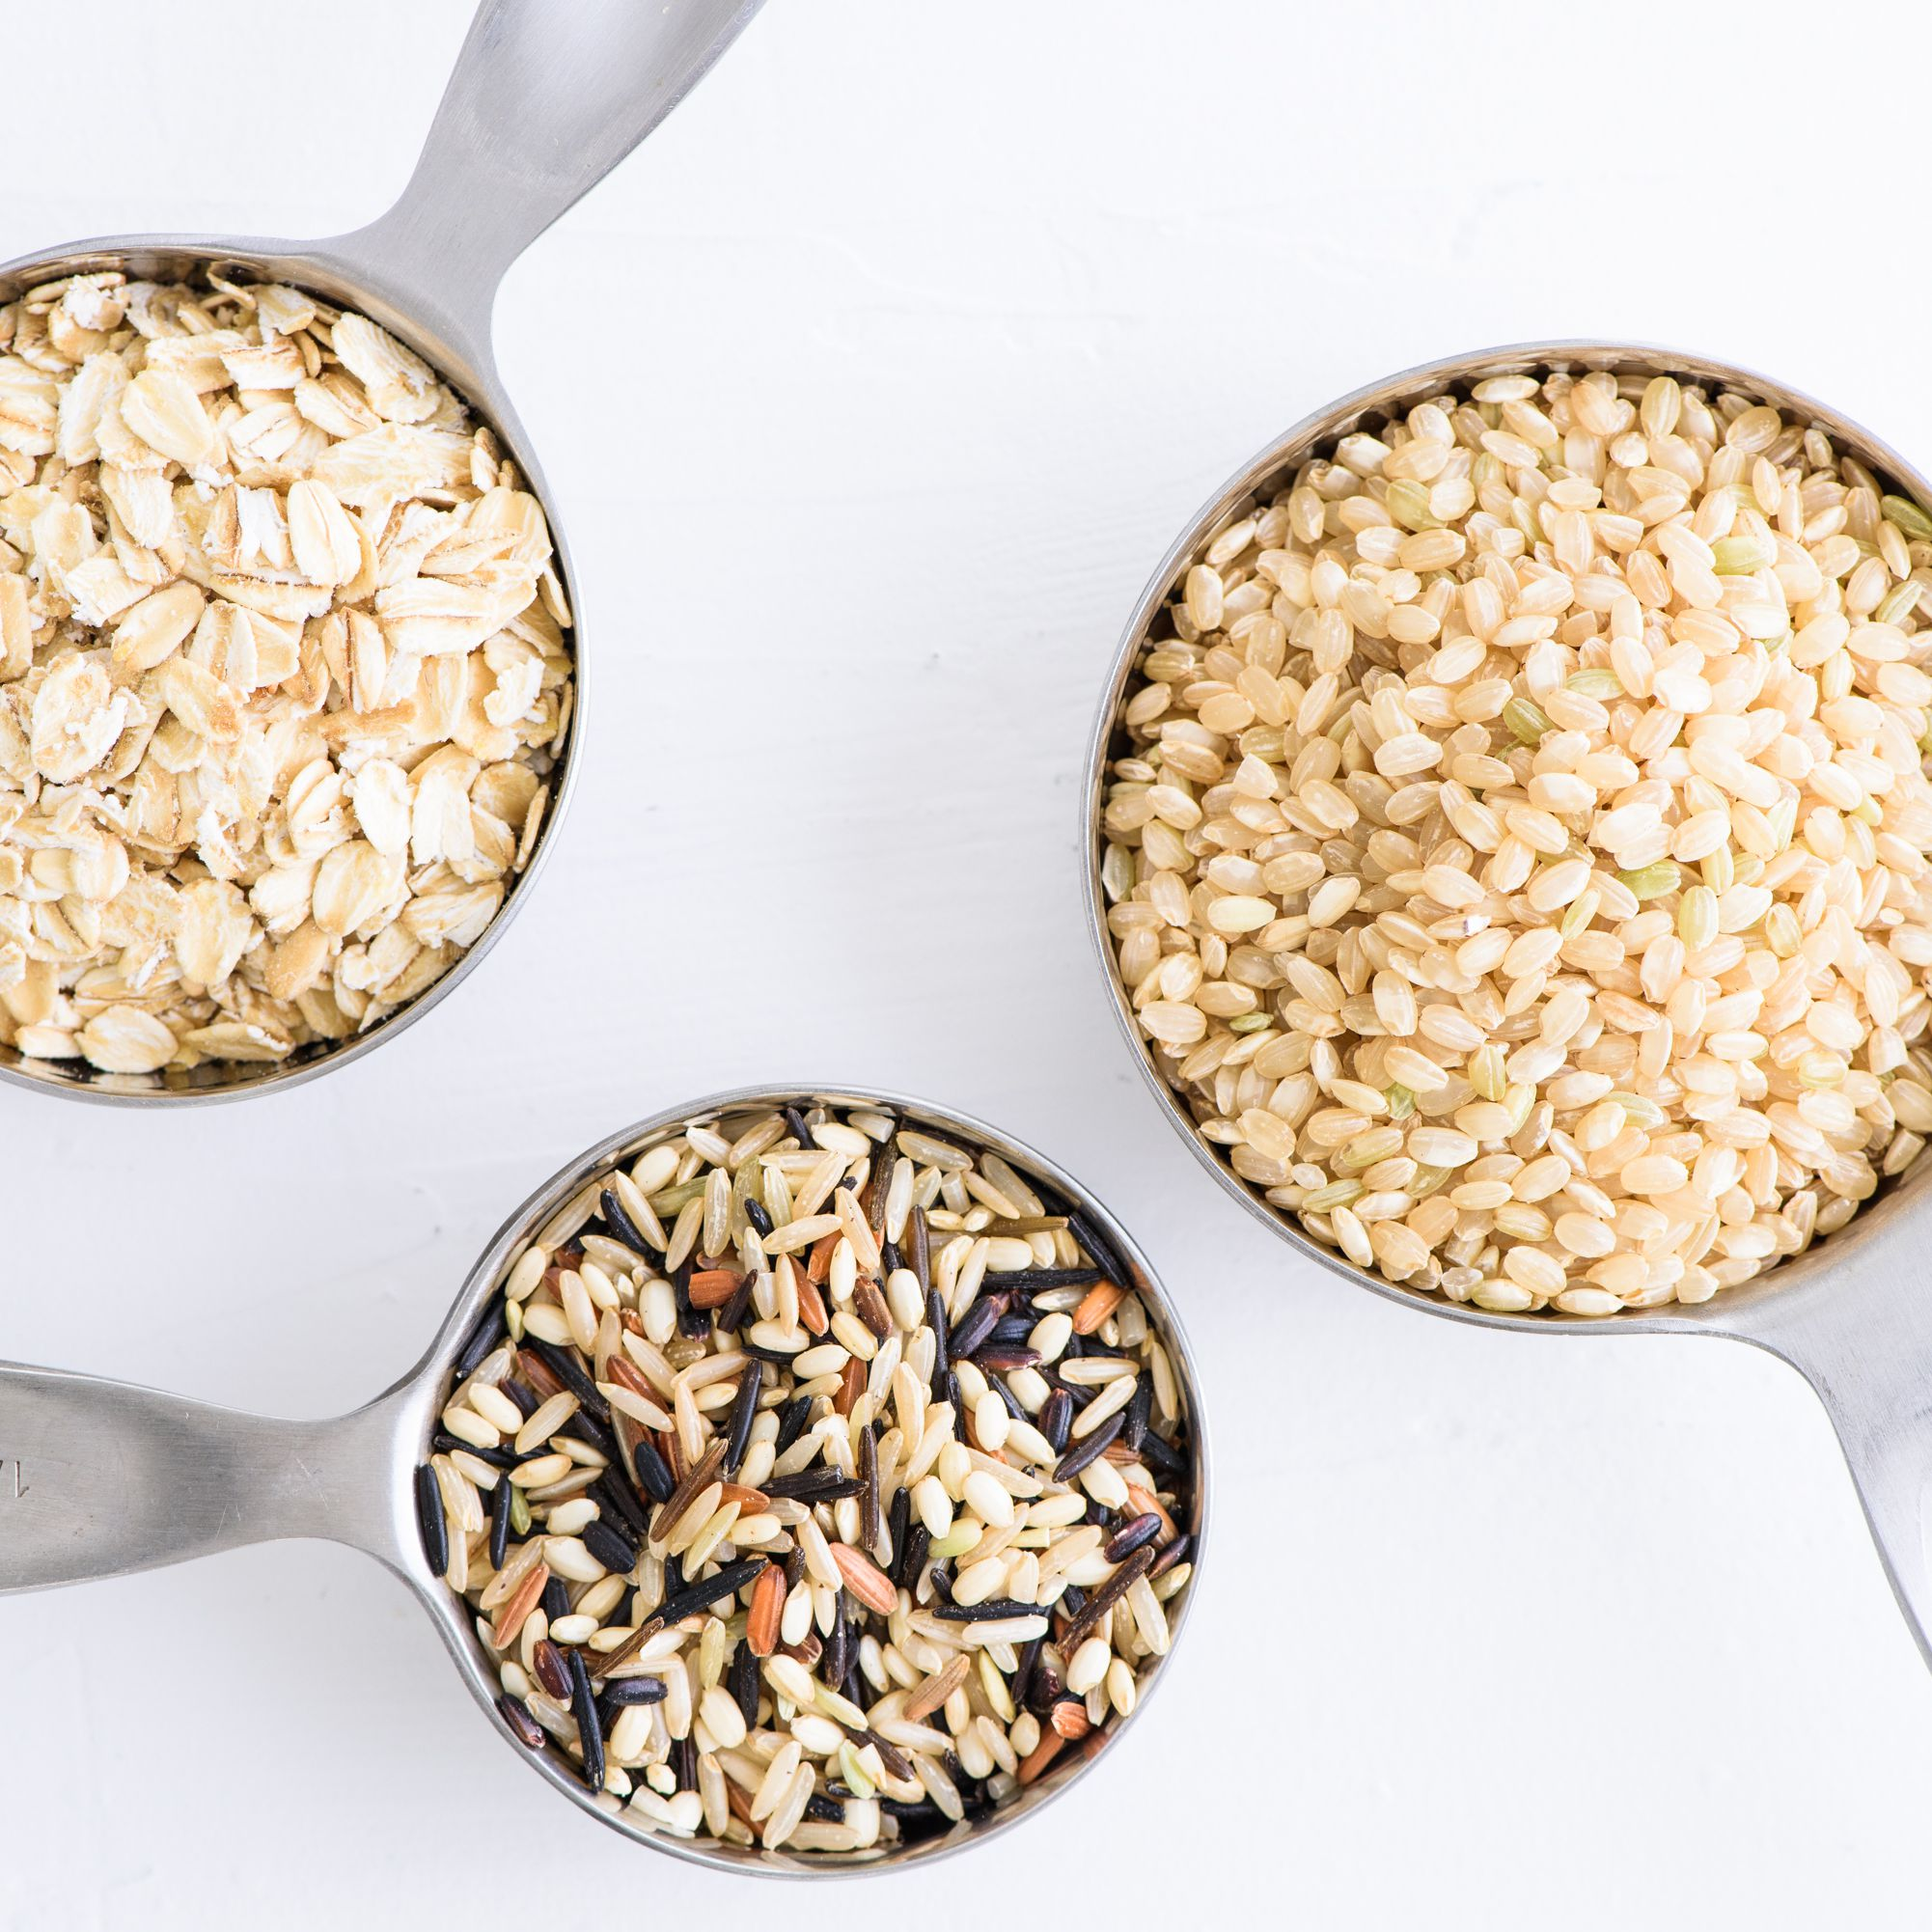 How Many Servings of Grain Should You Eat?